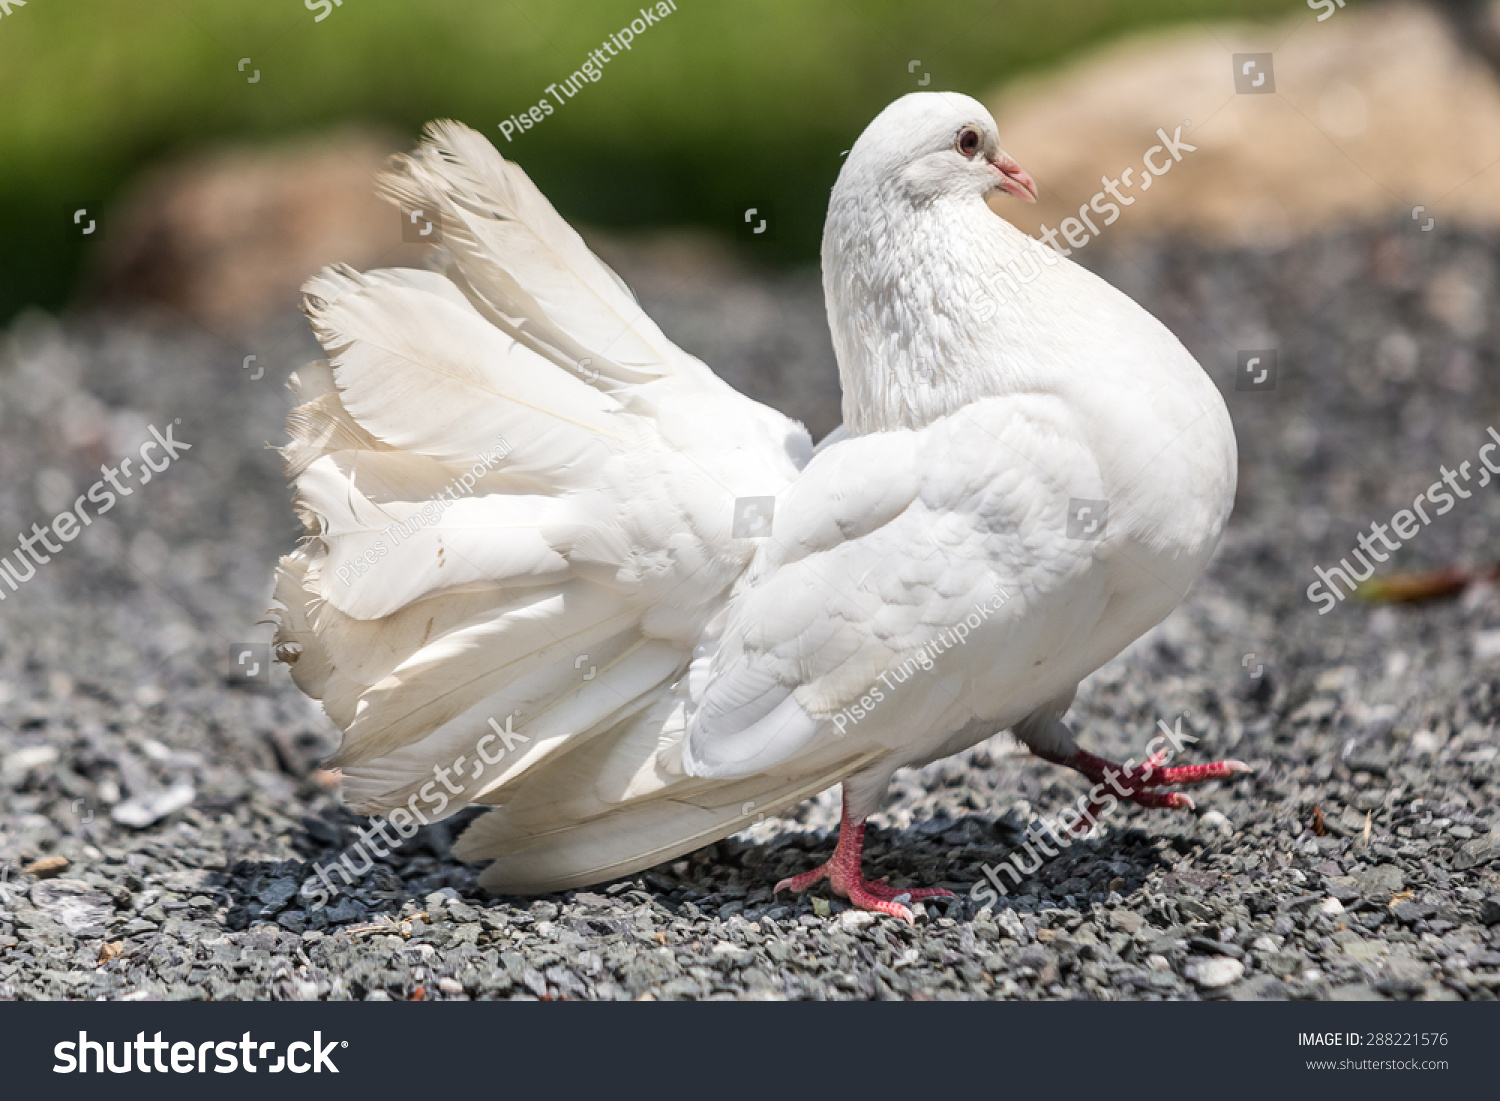 Fantail Pigeon Stock Photo 288221576 - Shutterstock